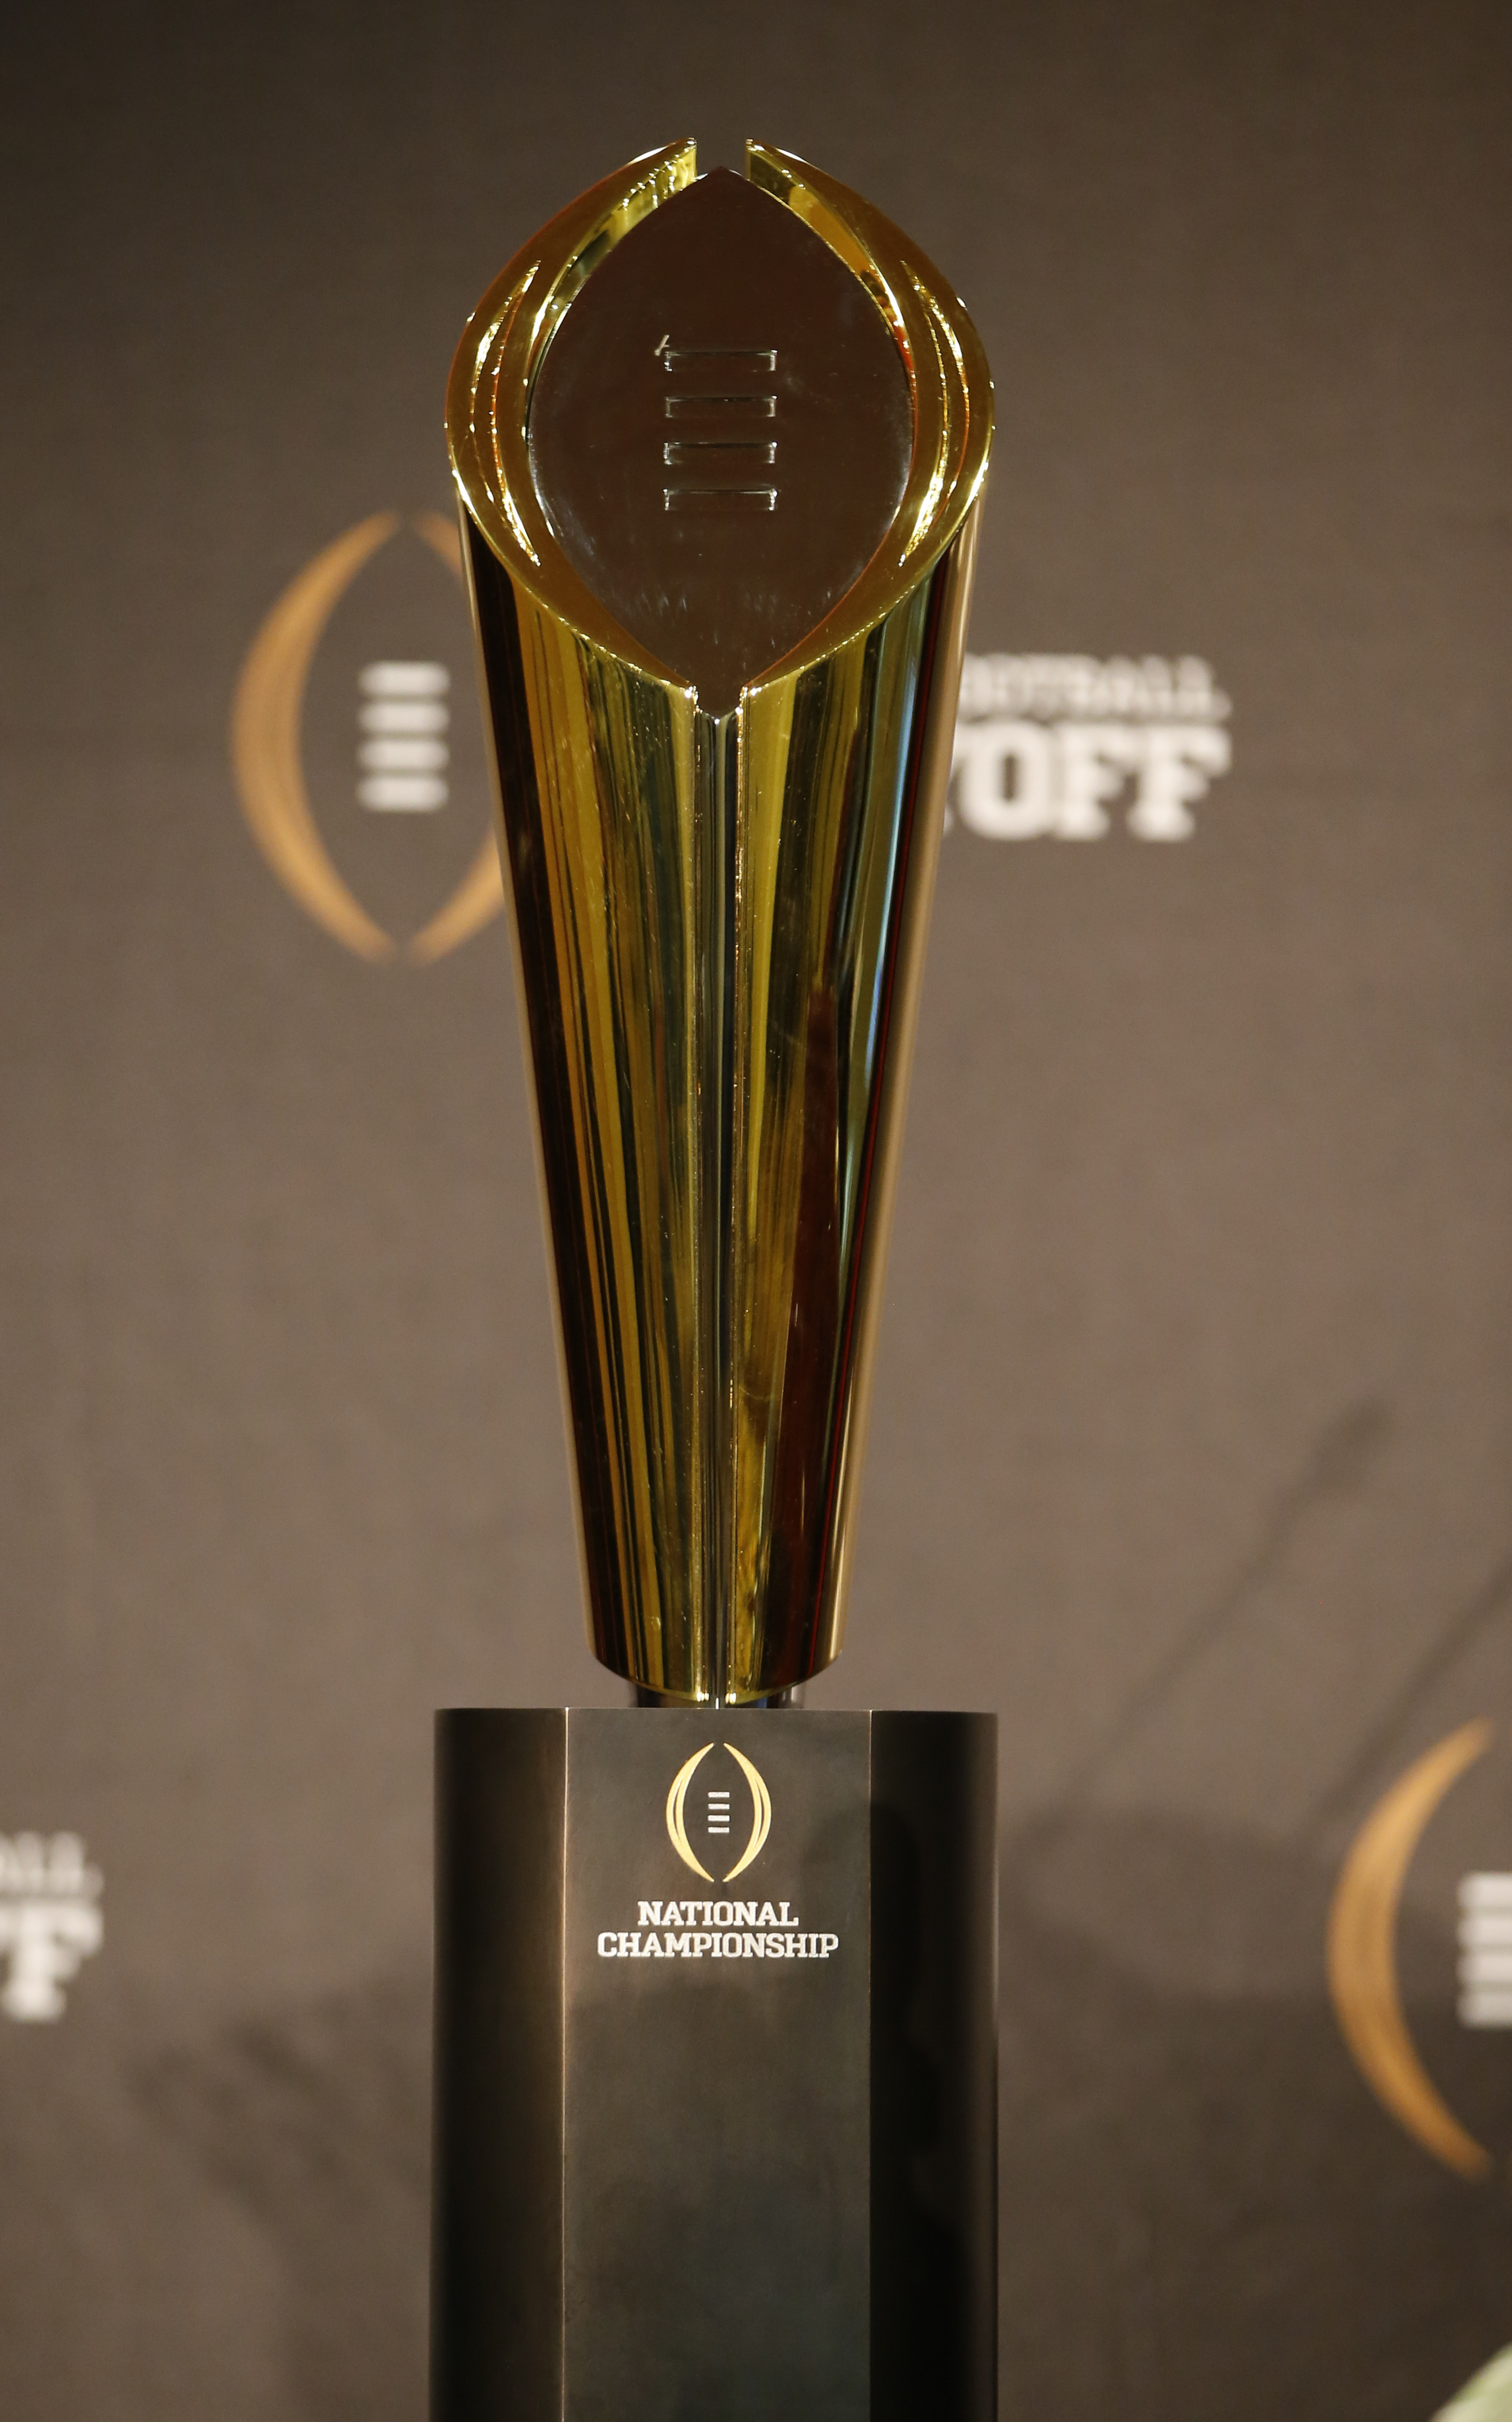 College football needs to modify how this prize is captured